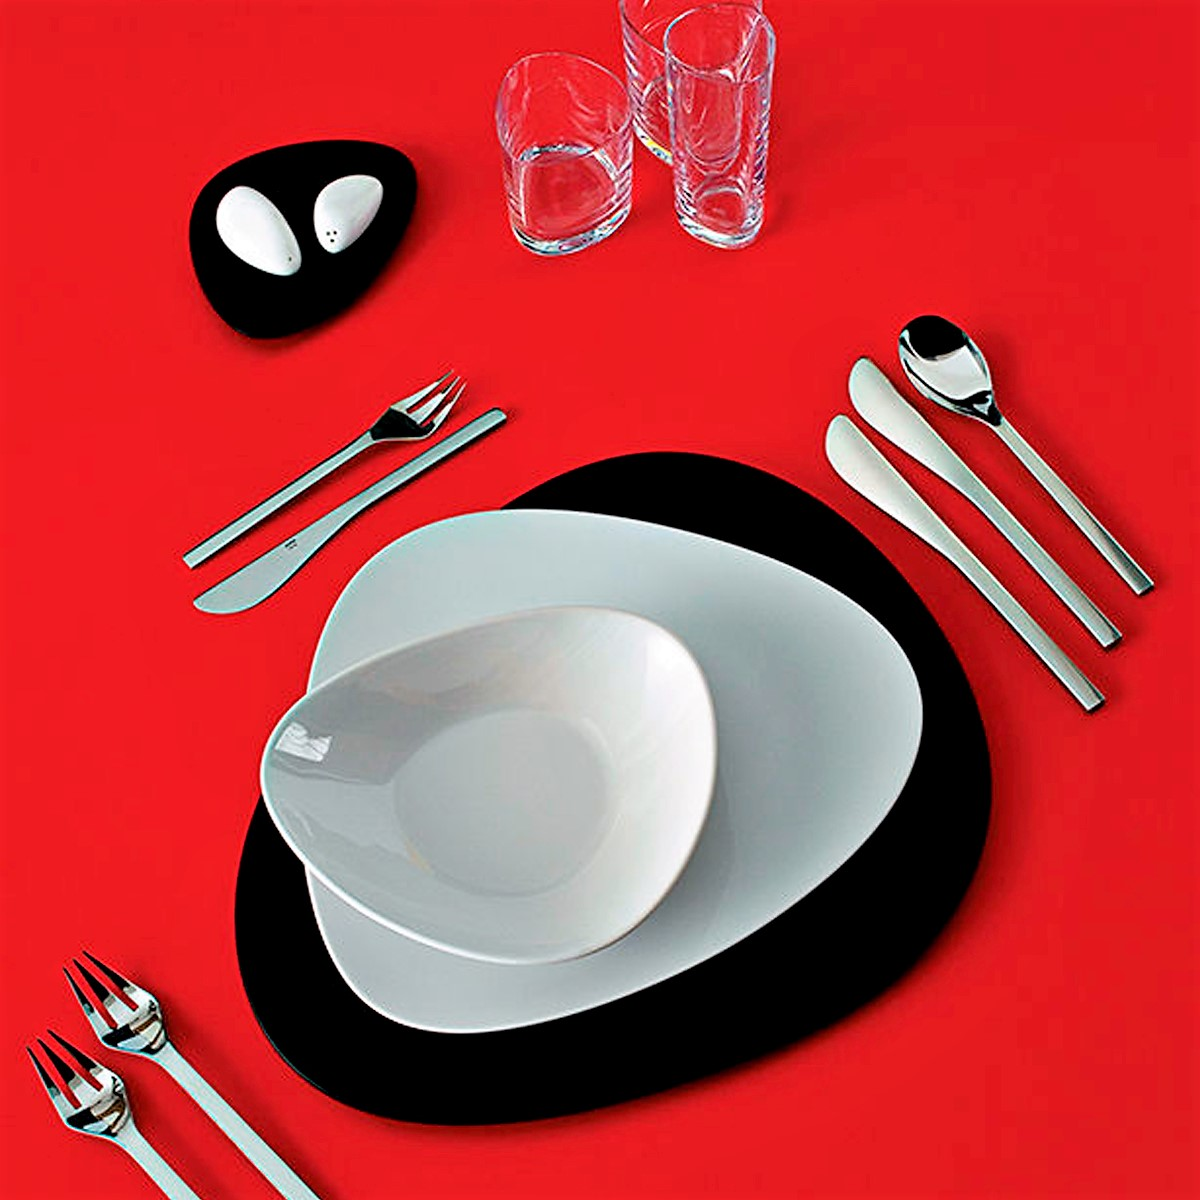 Alessi Silverware Alessi Cutlery Cutlery Sets Colombina Cutlery In